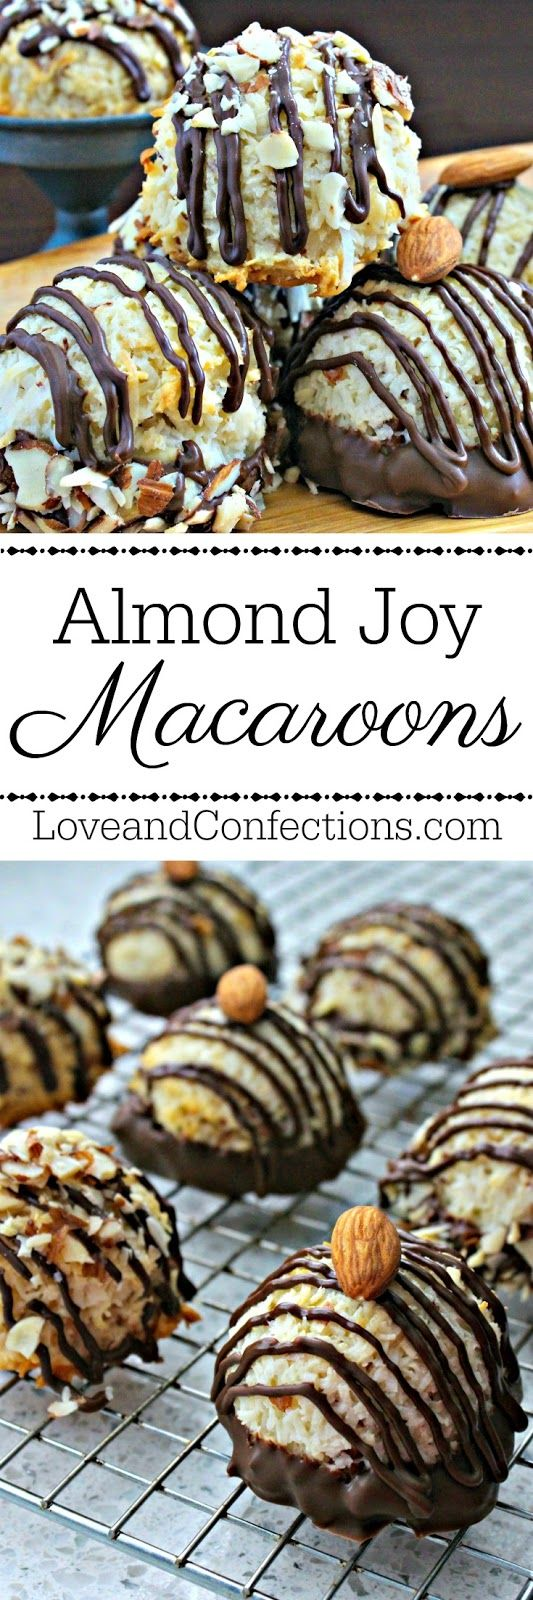 [sponsored] Almond Joy Coconut Macaroons from LoveandConfections.com with @dixiecrystals